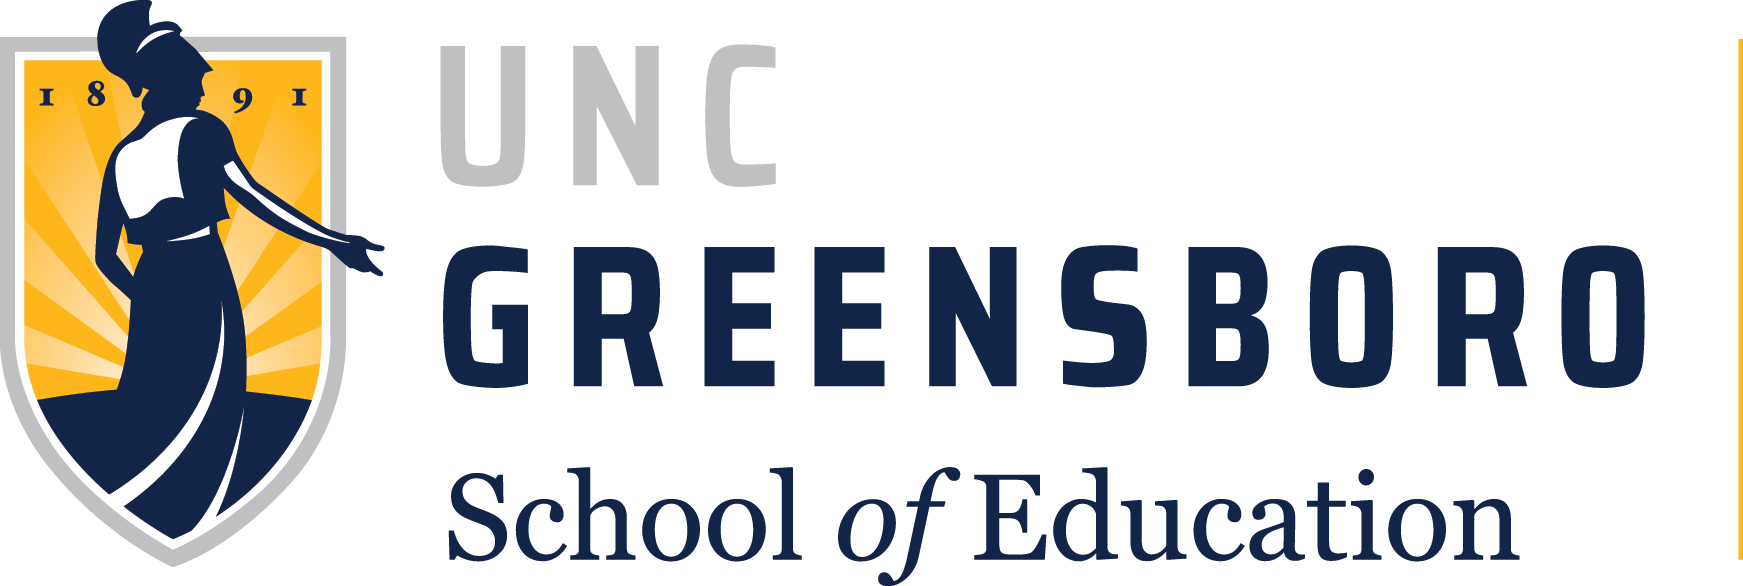 The logo for the University of North Carolina at Greensboro: a yellow shield with a dark blue silhouette of Athena in it